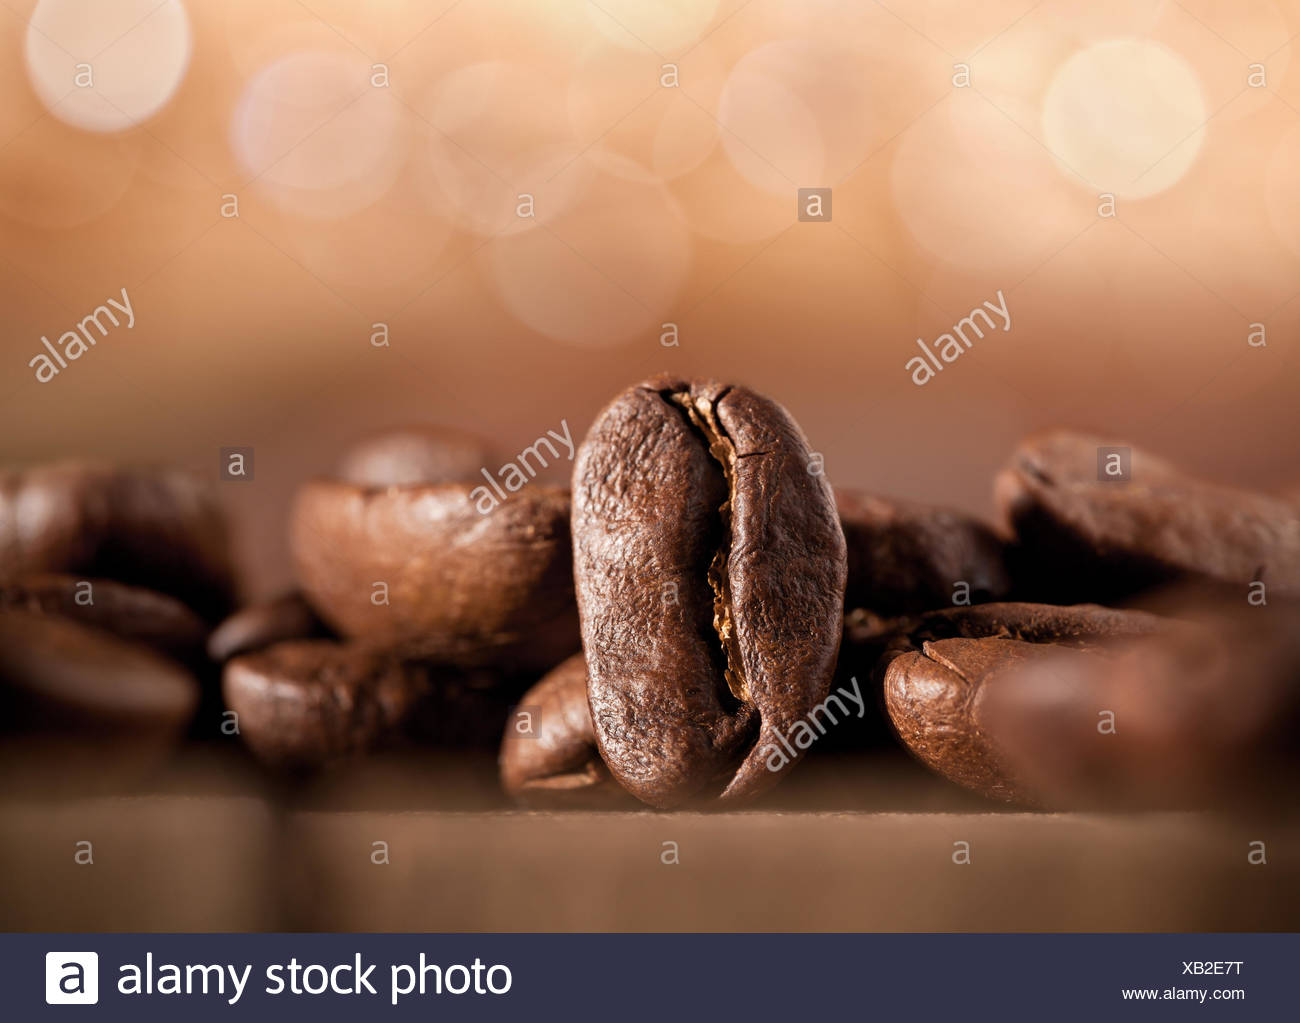 coffee beans on blurred background - Stock Image